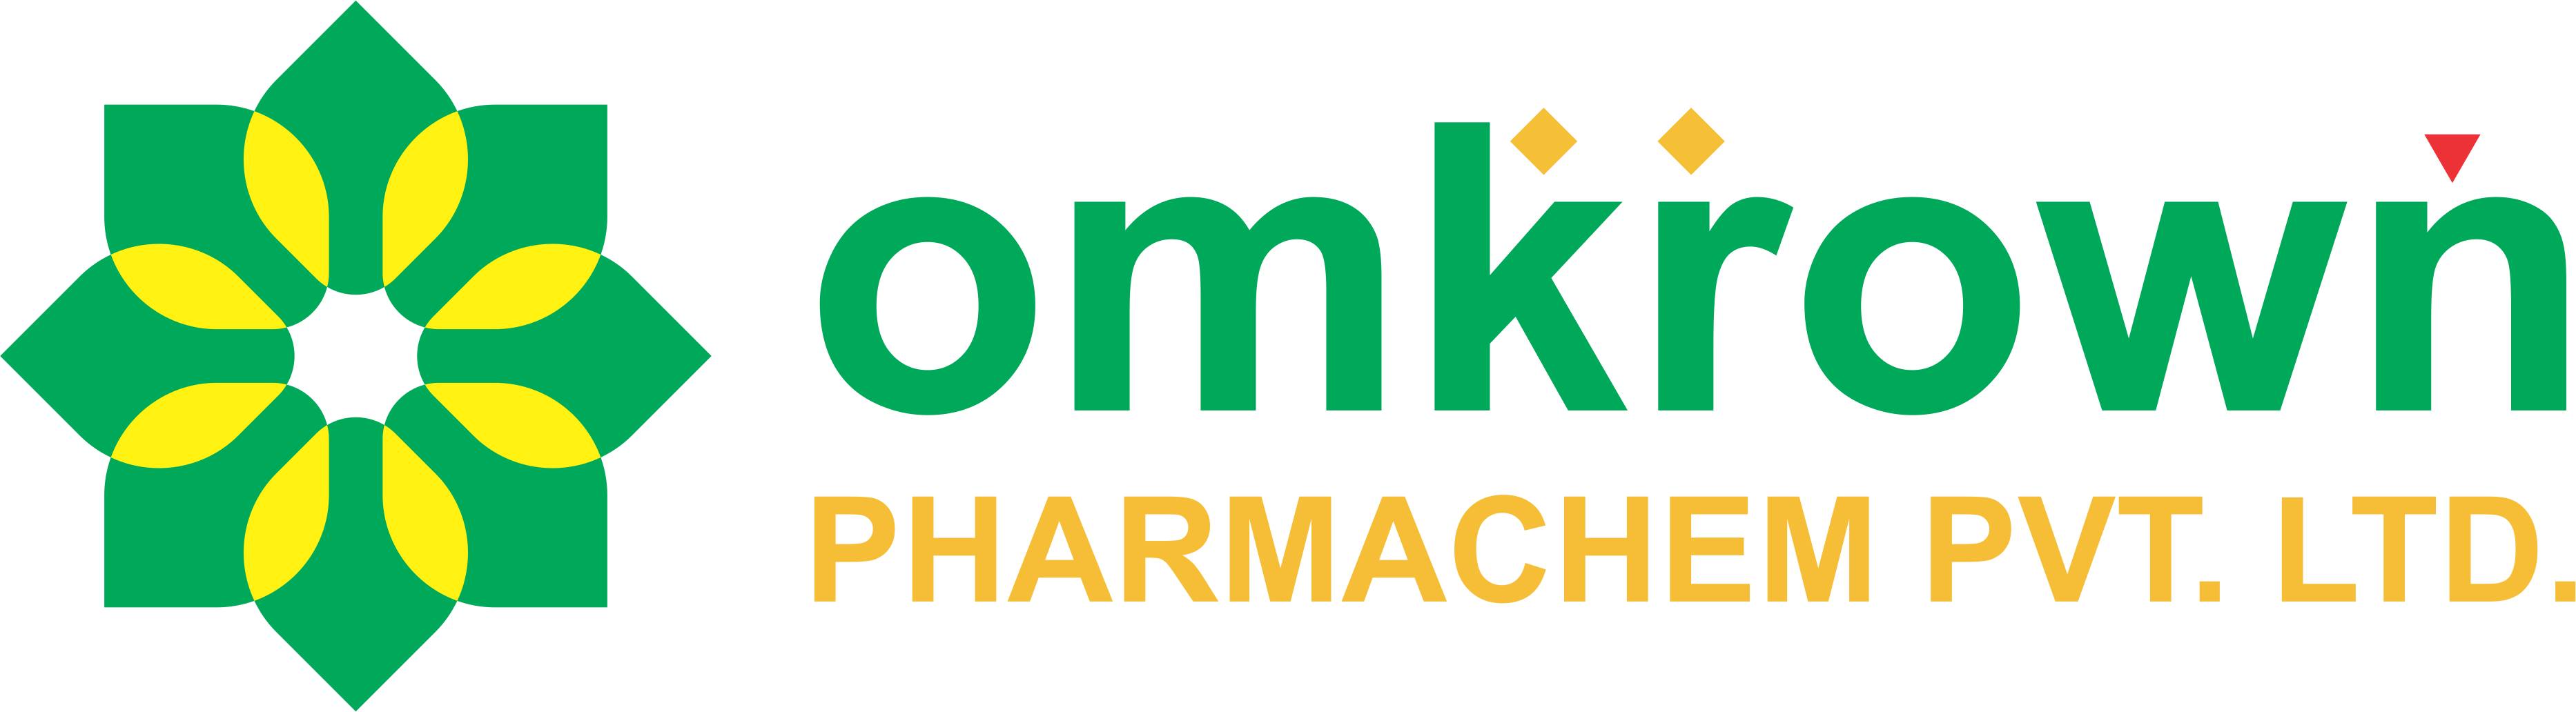 Omkrown Pharmachem Pvt Ltd